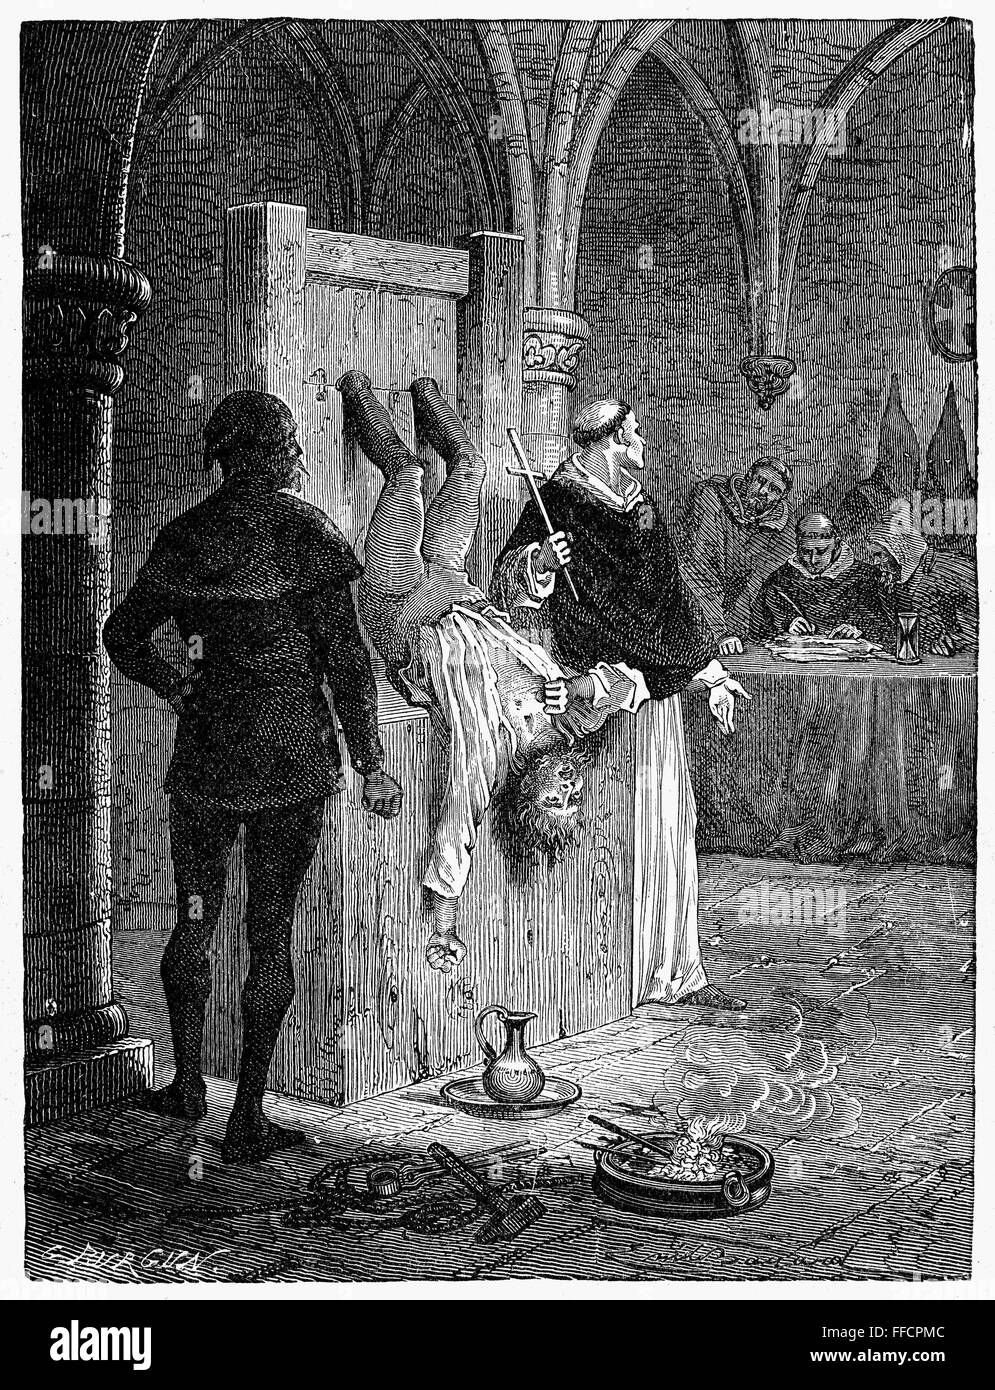 the spanish inquisition caused pain for the The new or spanish inquisition, introduced into the united kingdoms of castile, aragon, and navarre by ferdinand v and isabella the catholic, was directed chiefly against converted jews and against jews and moors.